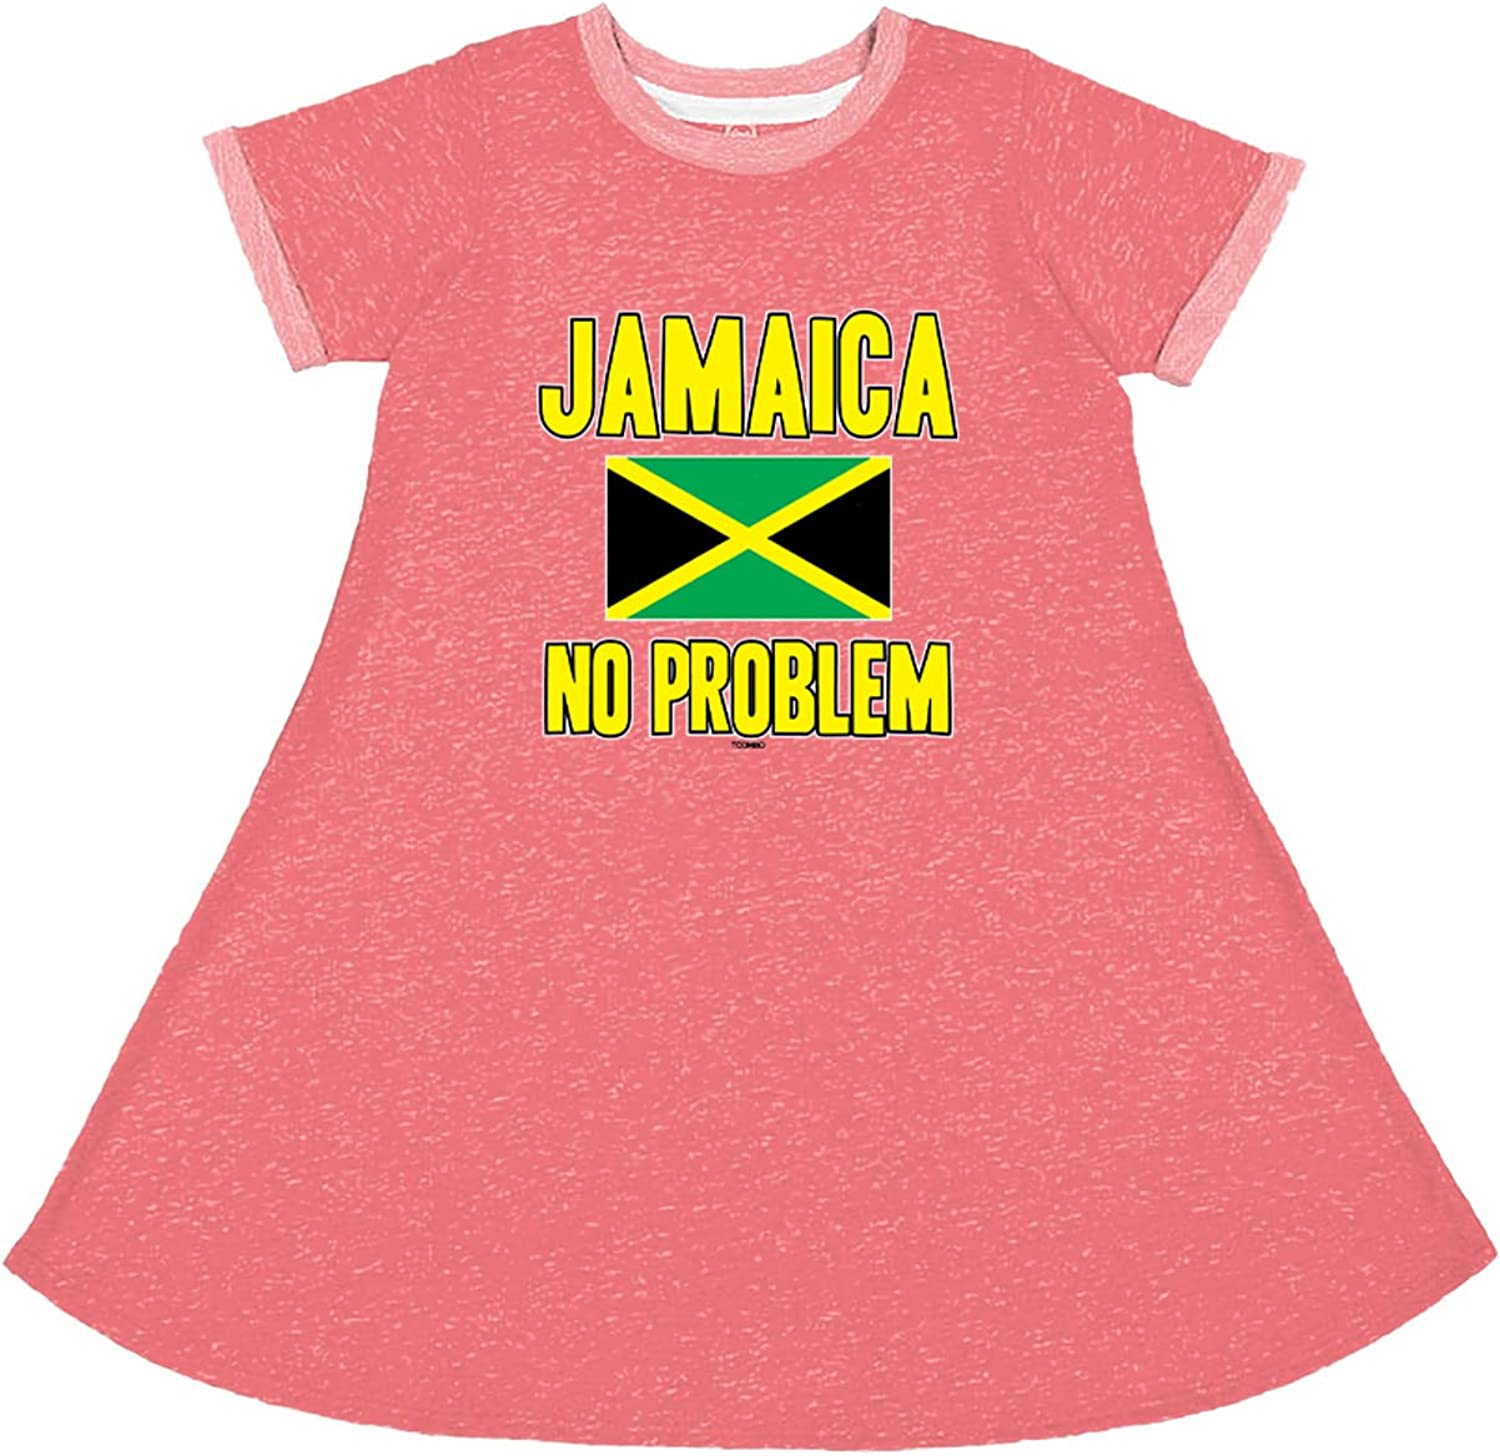 Amazon Com Jamaica No Problem Jamaican Strong Toddler Youth French Terry Dress Clothing